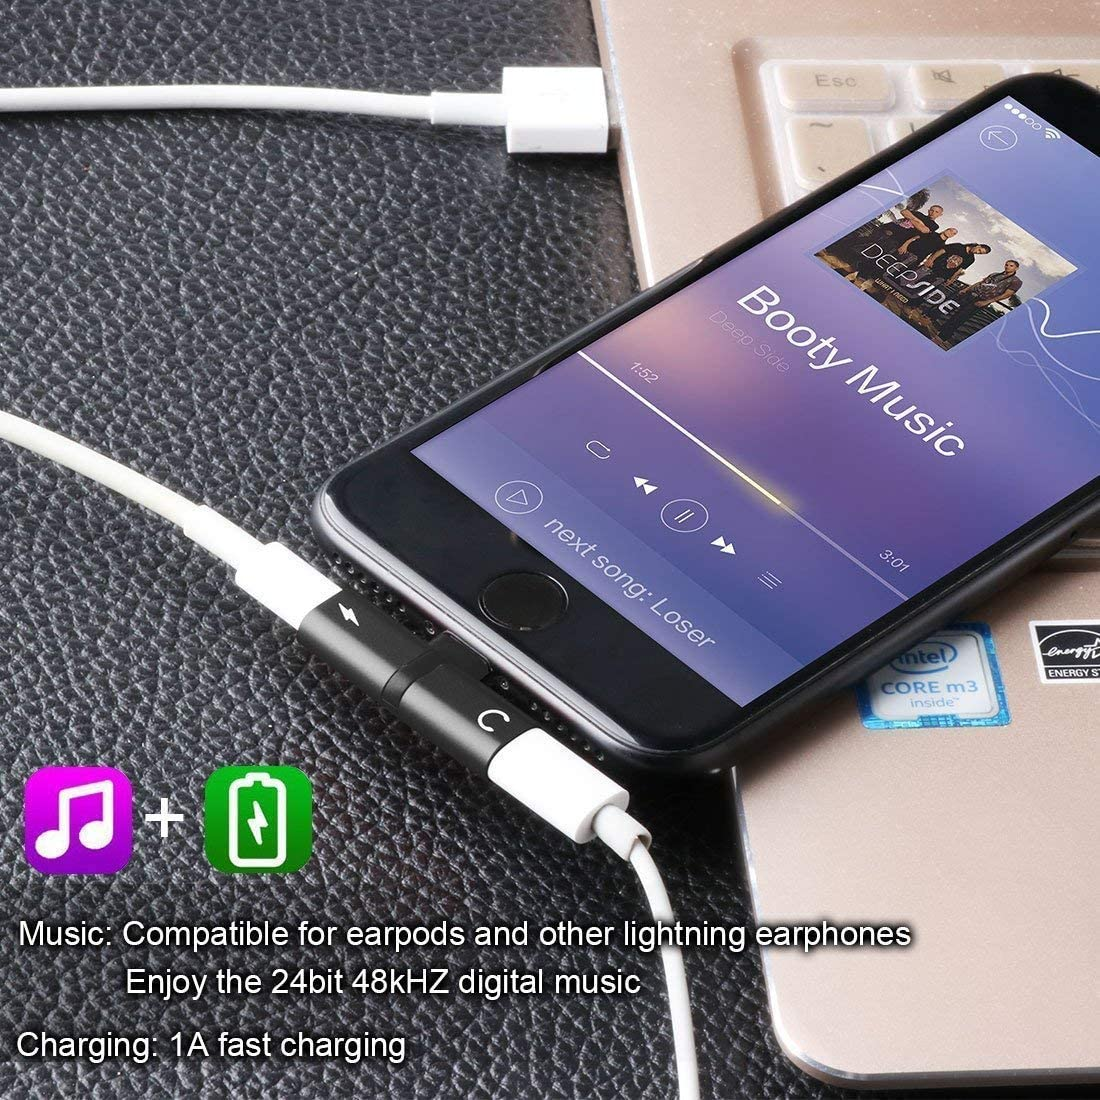 X Splitter Compatible with iPhone 7 iPad,iPad Pro 8 Plus Sync,Music Control Charge Cable Adapter,Work with iOS 12 or Later 2 in 1 Dual Headphone Jack Audio 7 Plus 8